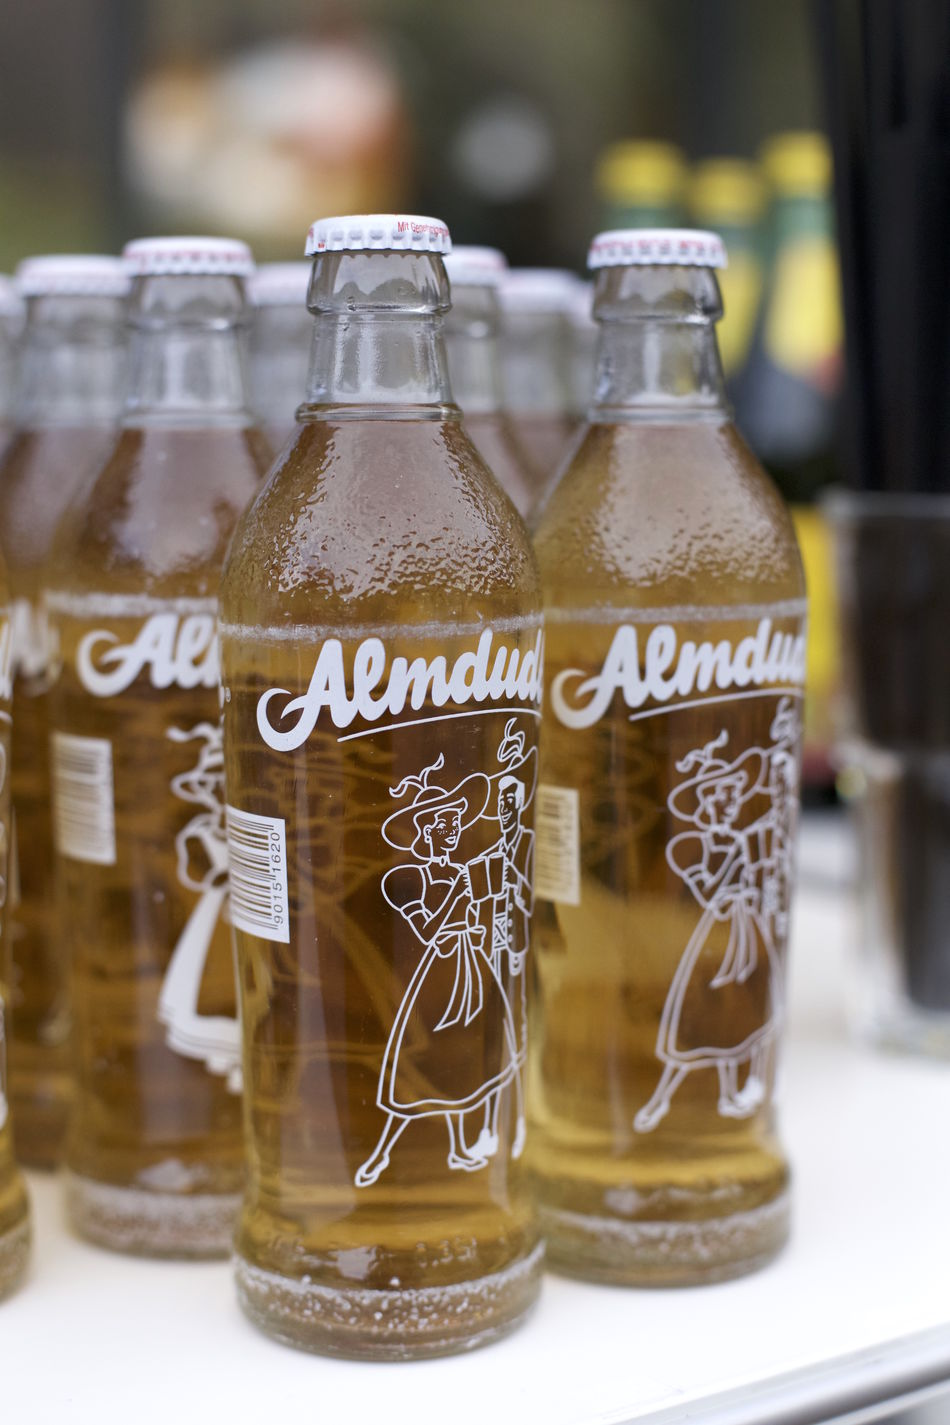 Chilled bubbles. Almdudler Arrangement Bottle Choice Close-up Creativity Culture Drink Drinking Focus On Foreground Food And Drink Glass Glass - Material Hotel Refreshment Still Life Table Transparent Variation